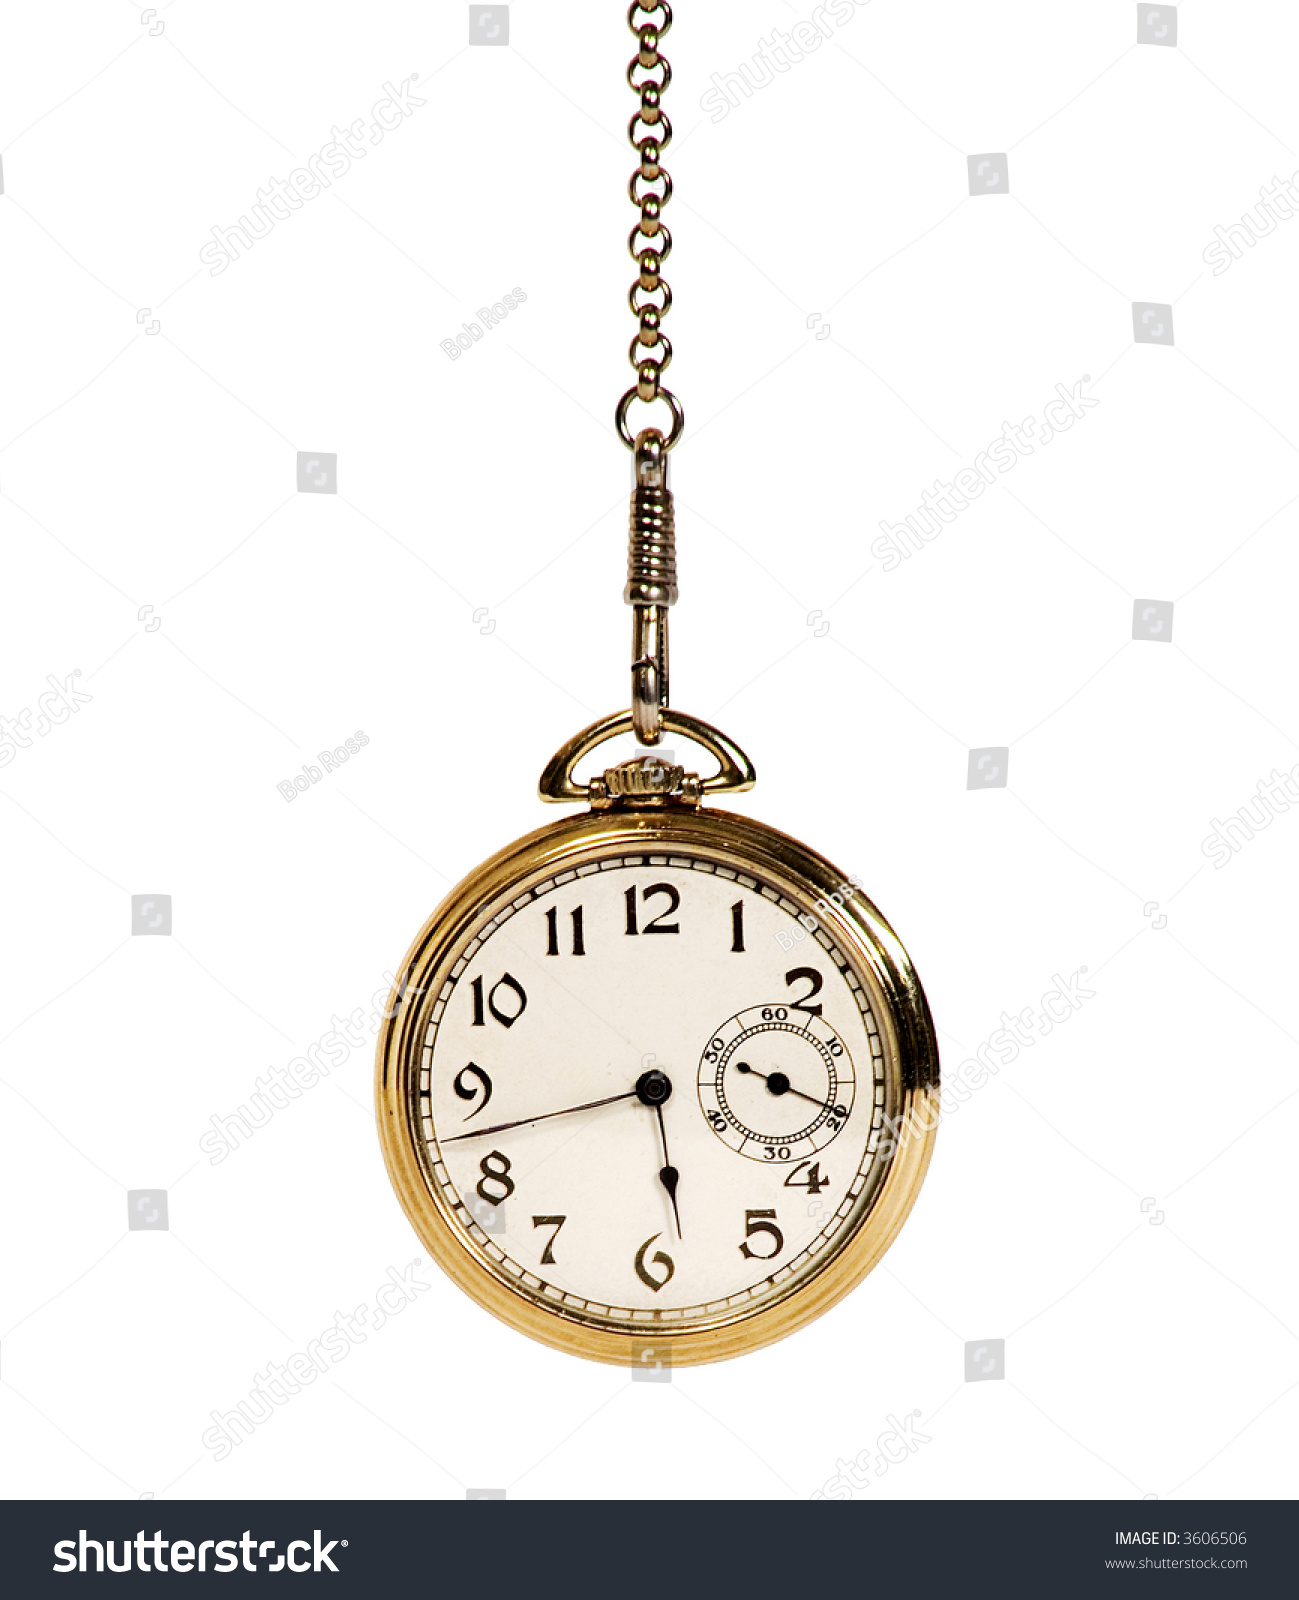 hanging pocket watch stock photo 3606506 shutterstock